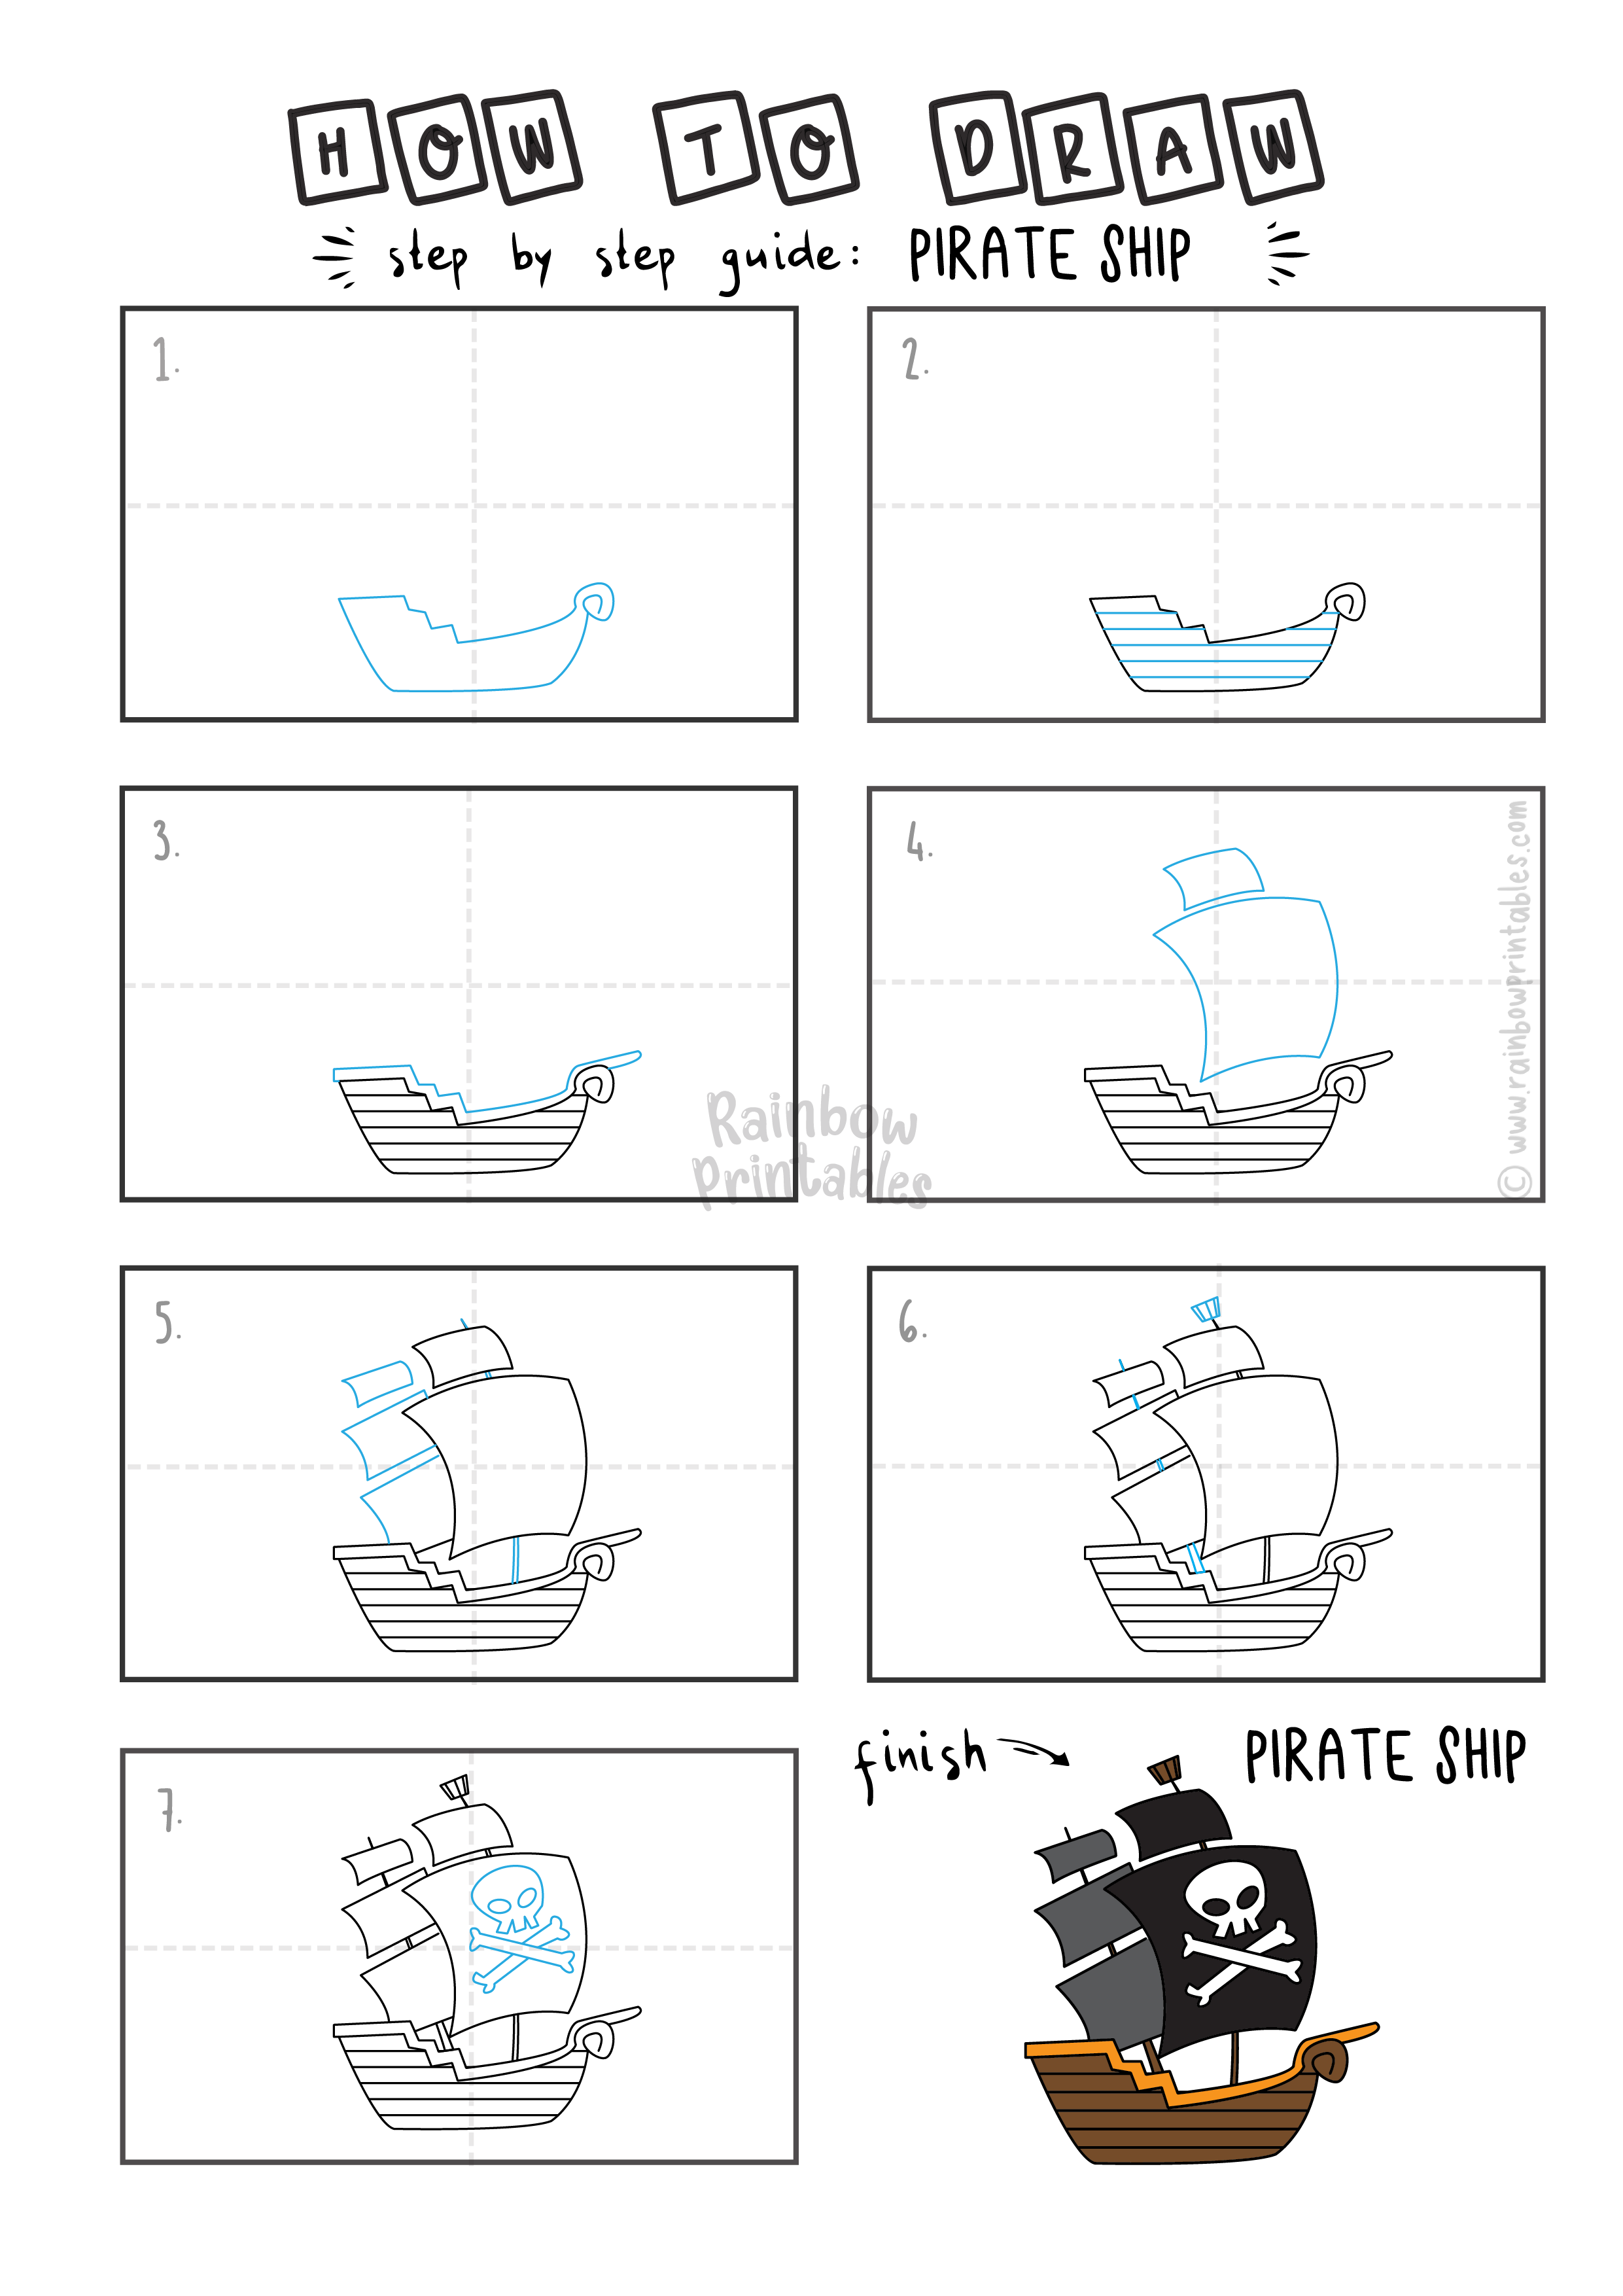 How To Draw a PIRATE SHIP BOAT HISTORY Step By Step Easy Simple Drawing Guide for Kids